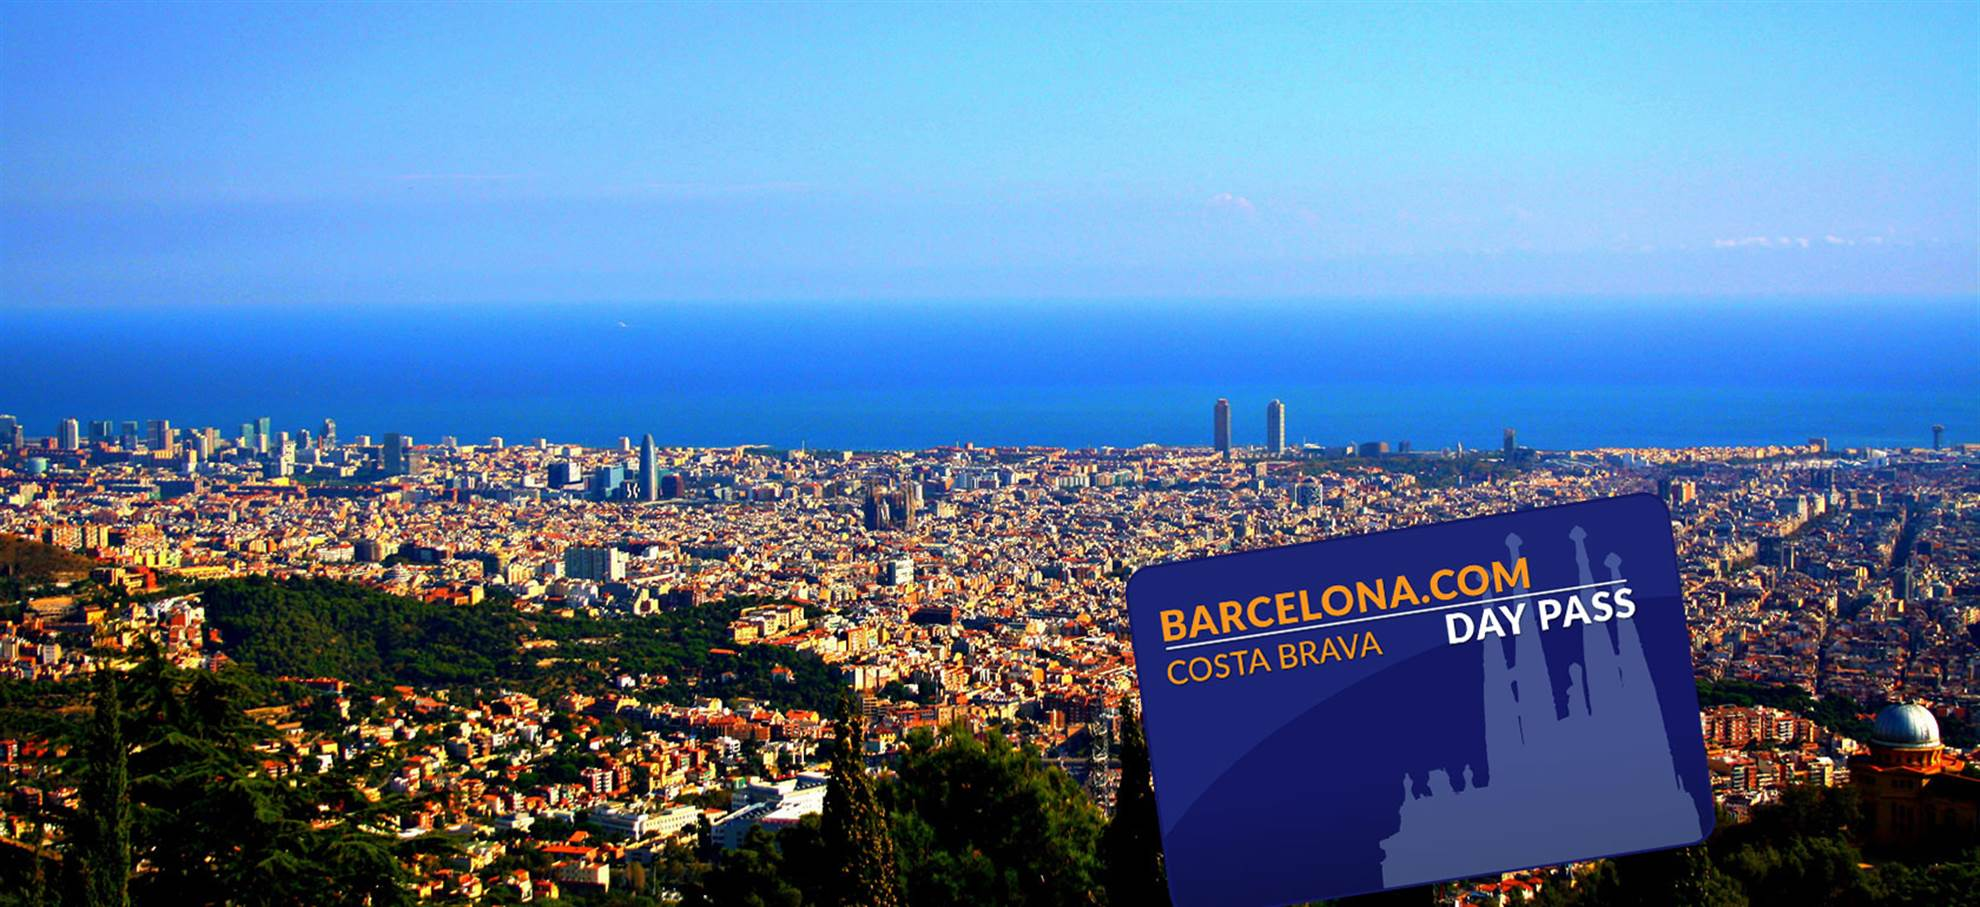 Costa Brava – Barcelona.com City Pass